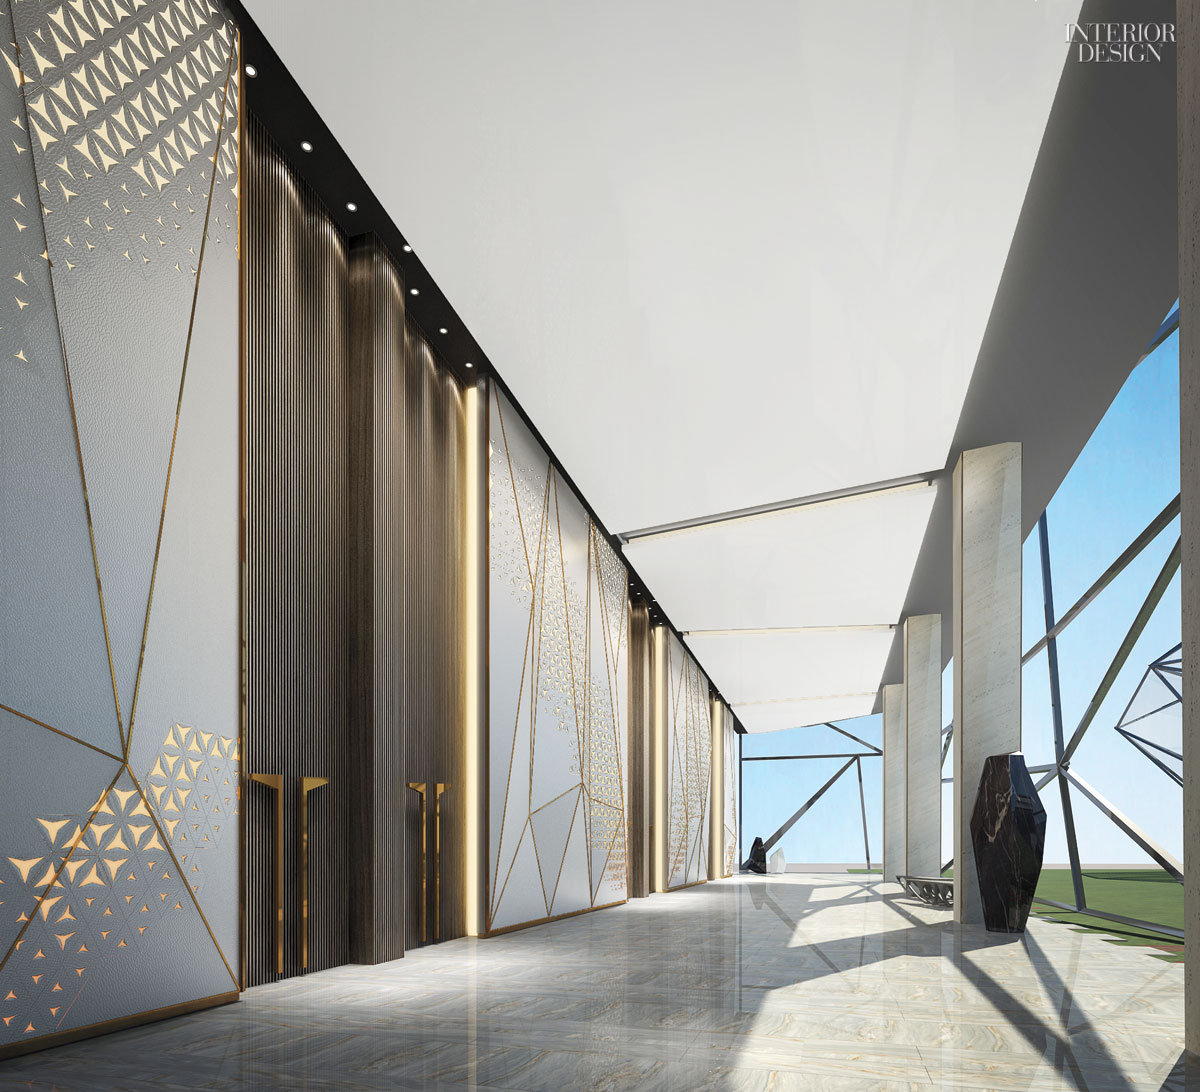 Best Corridor Design: After Working For A Chinese Developer, D.B. Kim Returns To